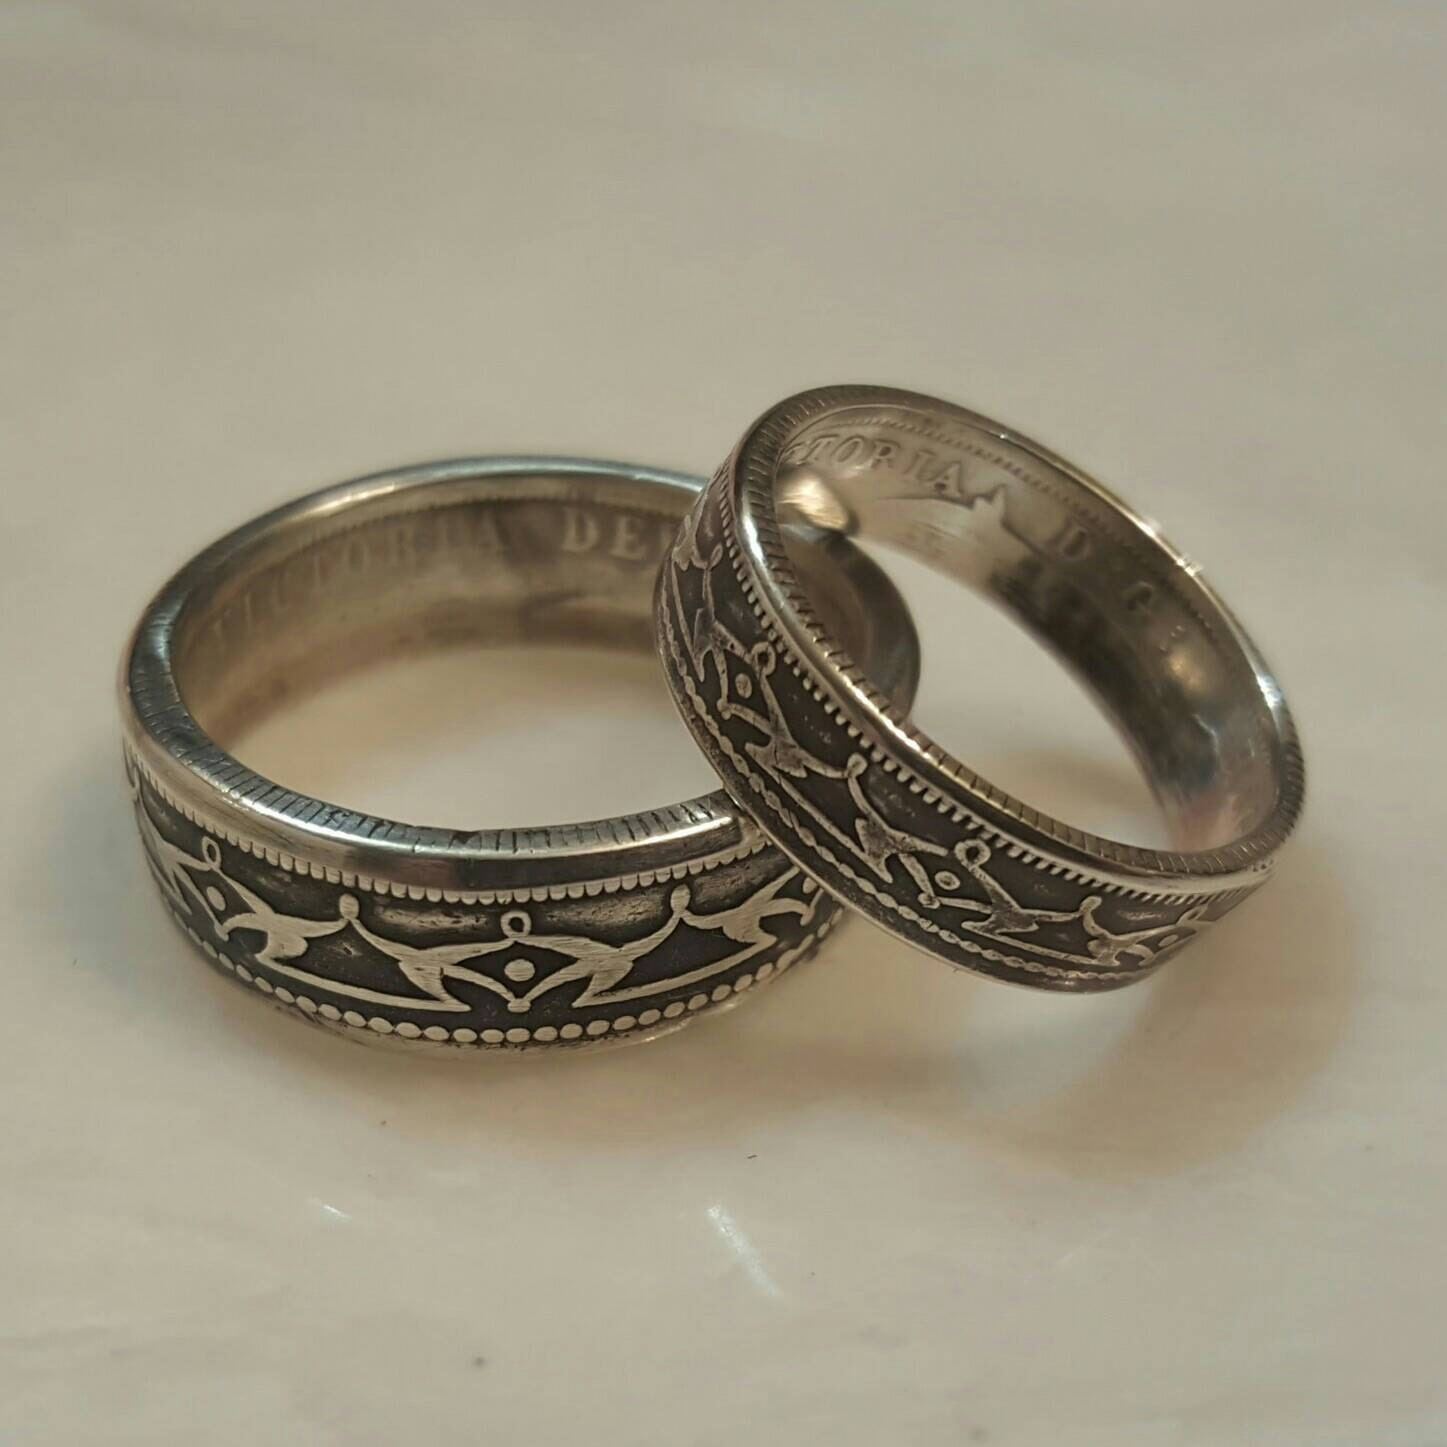 Canadian Coin Rings His and Hers Vintage Wedding Ring Set